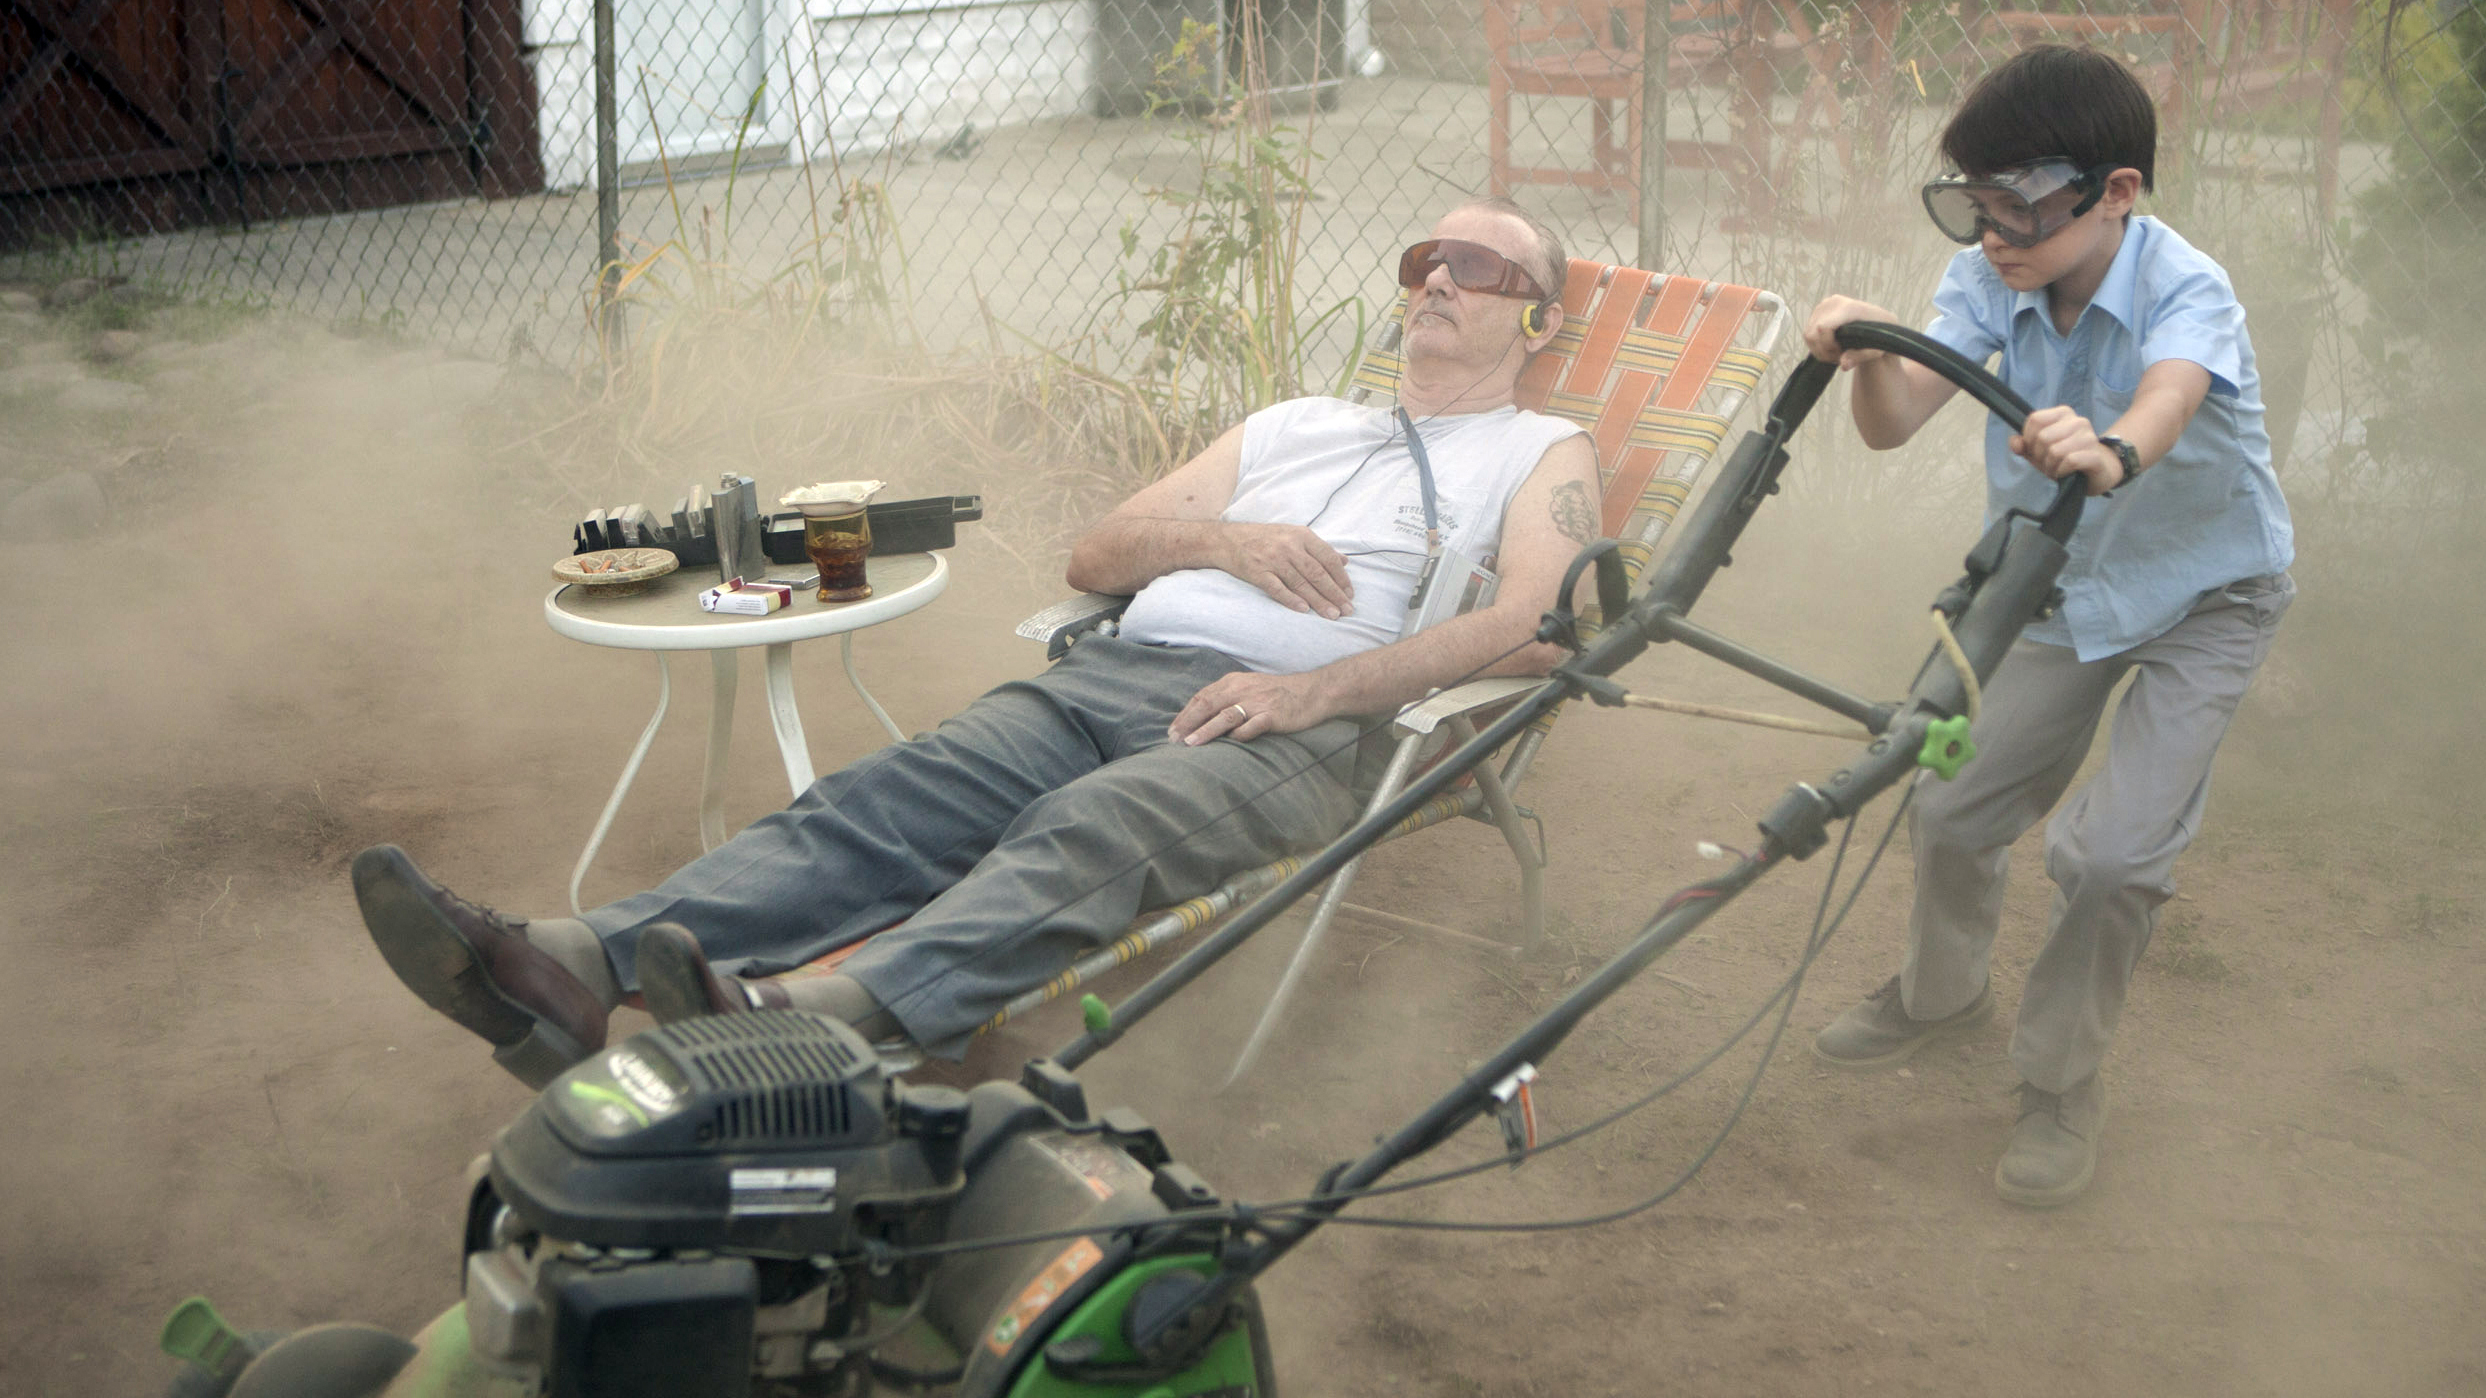 Bill Murray Doesn't Do Much, But He Does It So Well In 'St. Vincent'